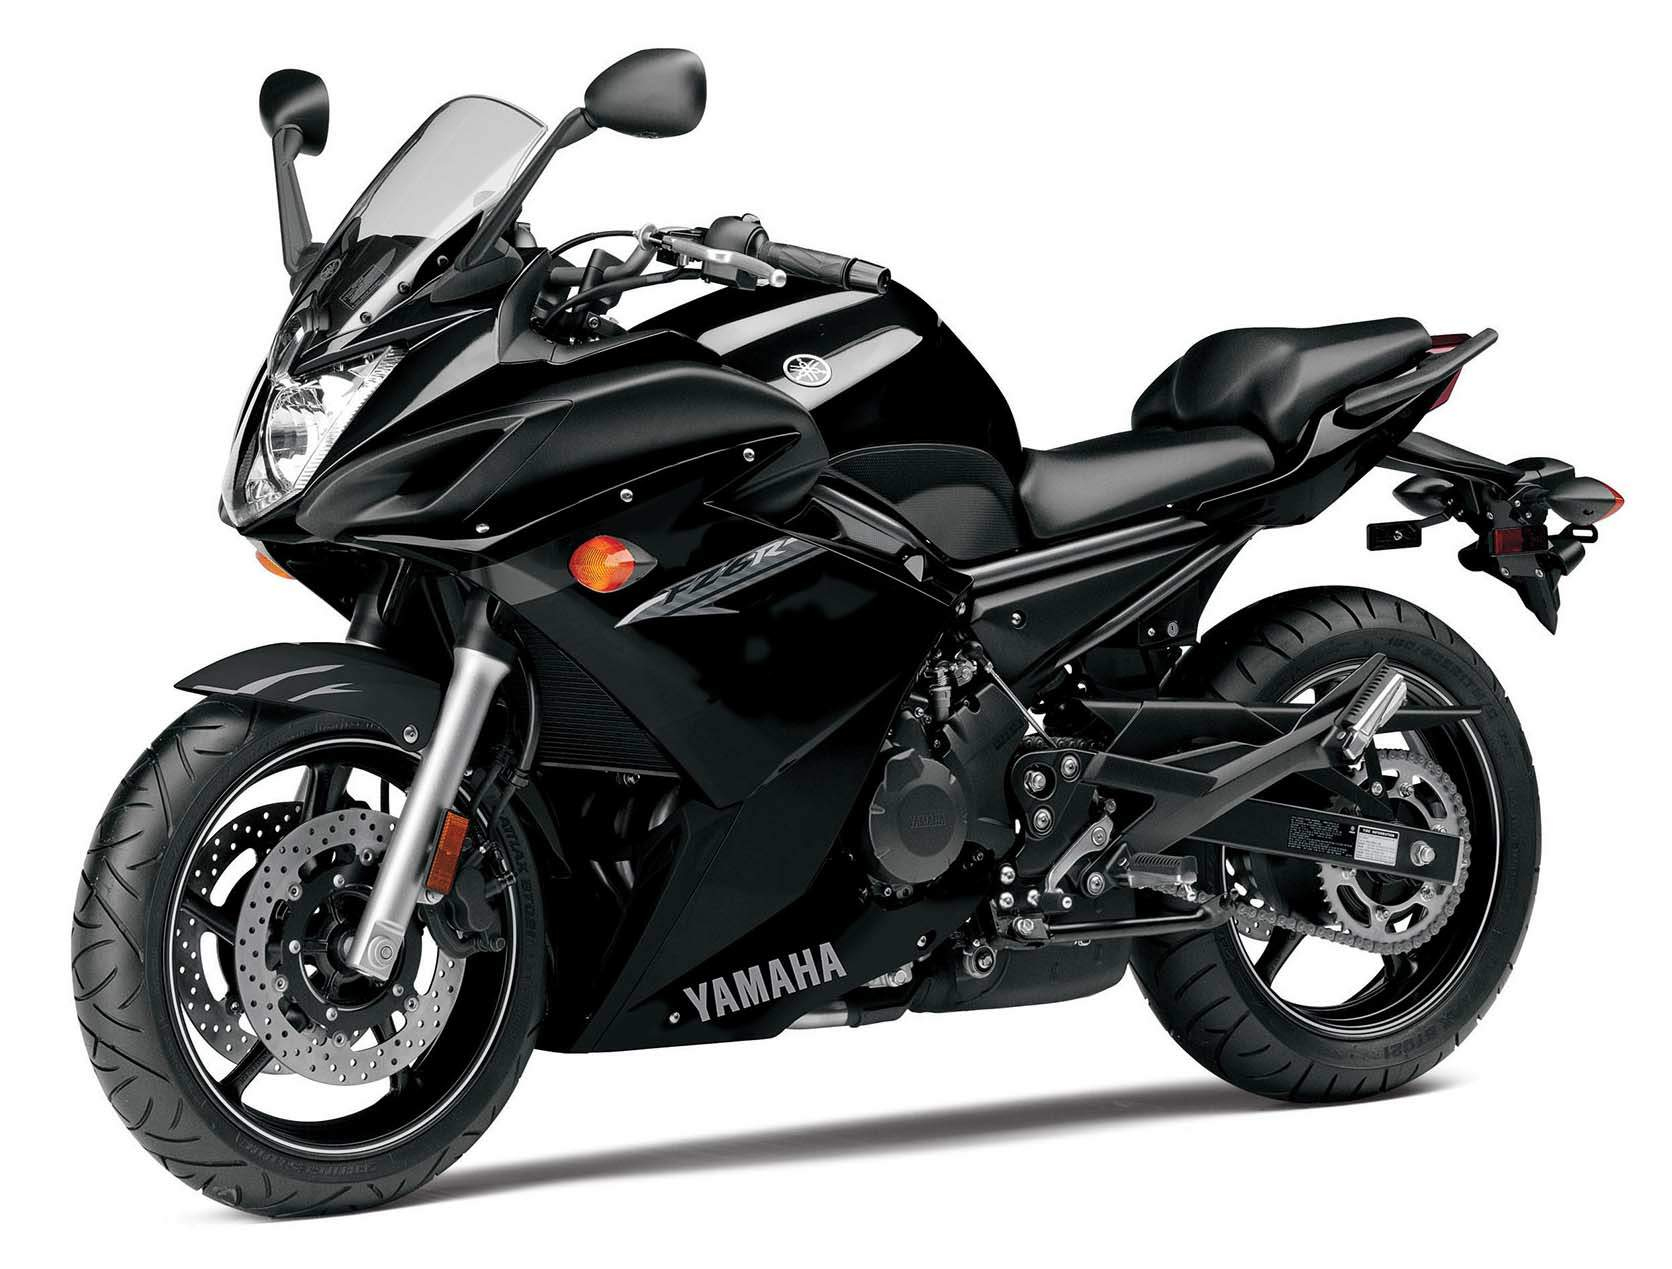 2014 Yamaha Fz6r Specifications Specs Yamaha Motorsports